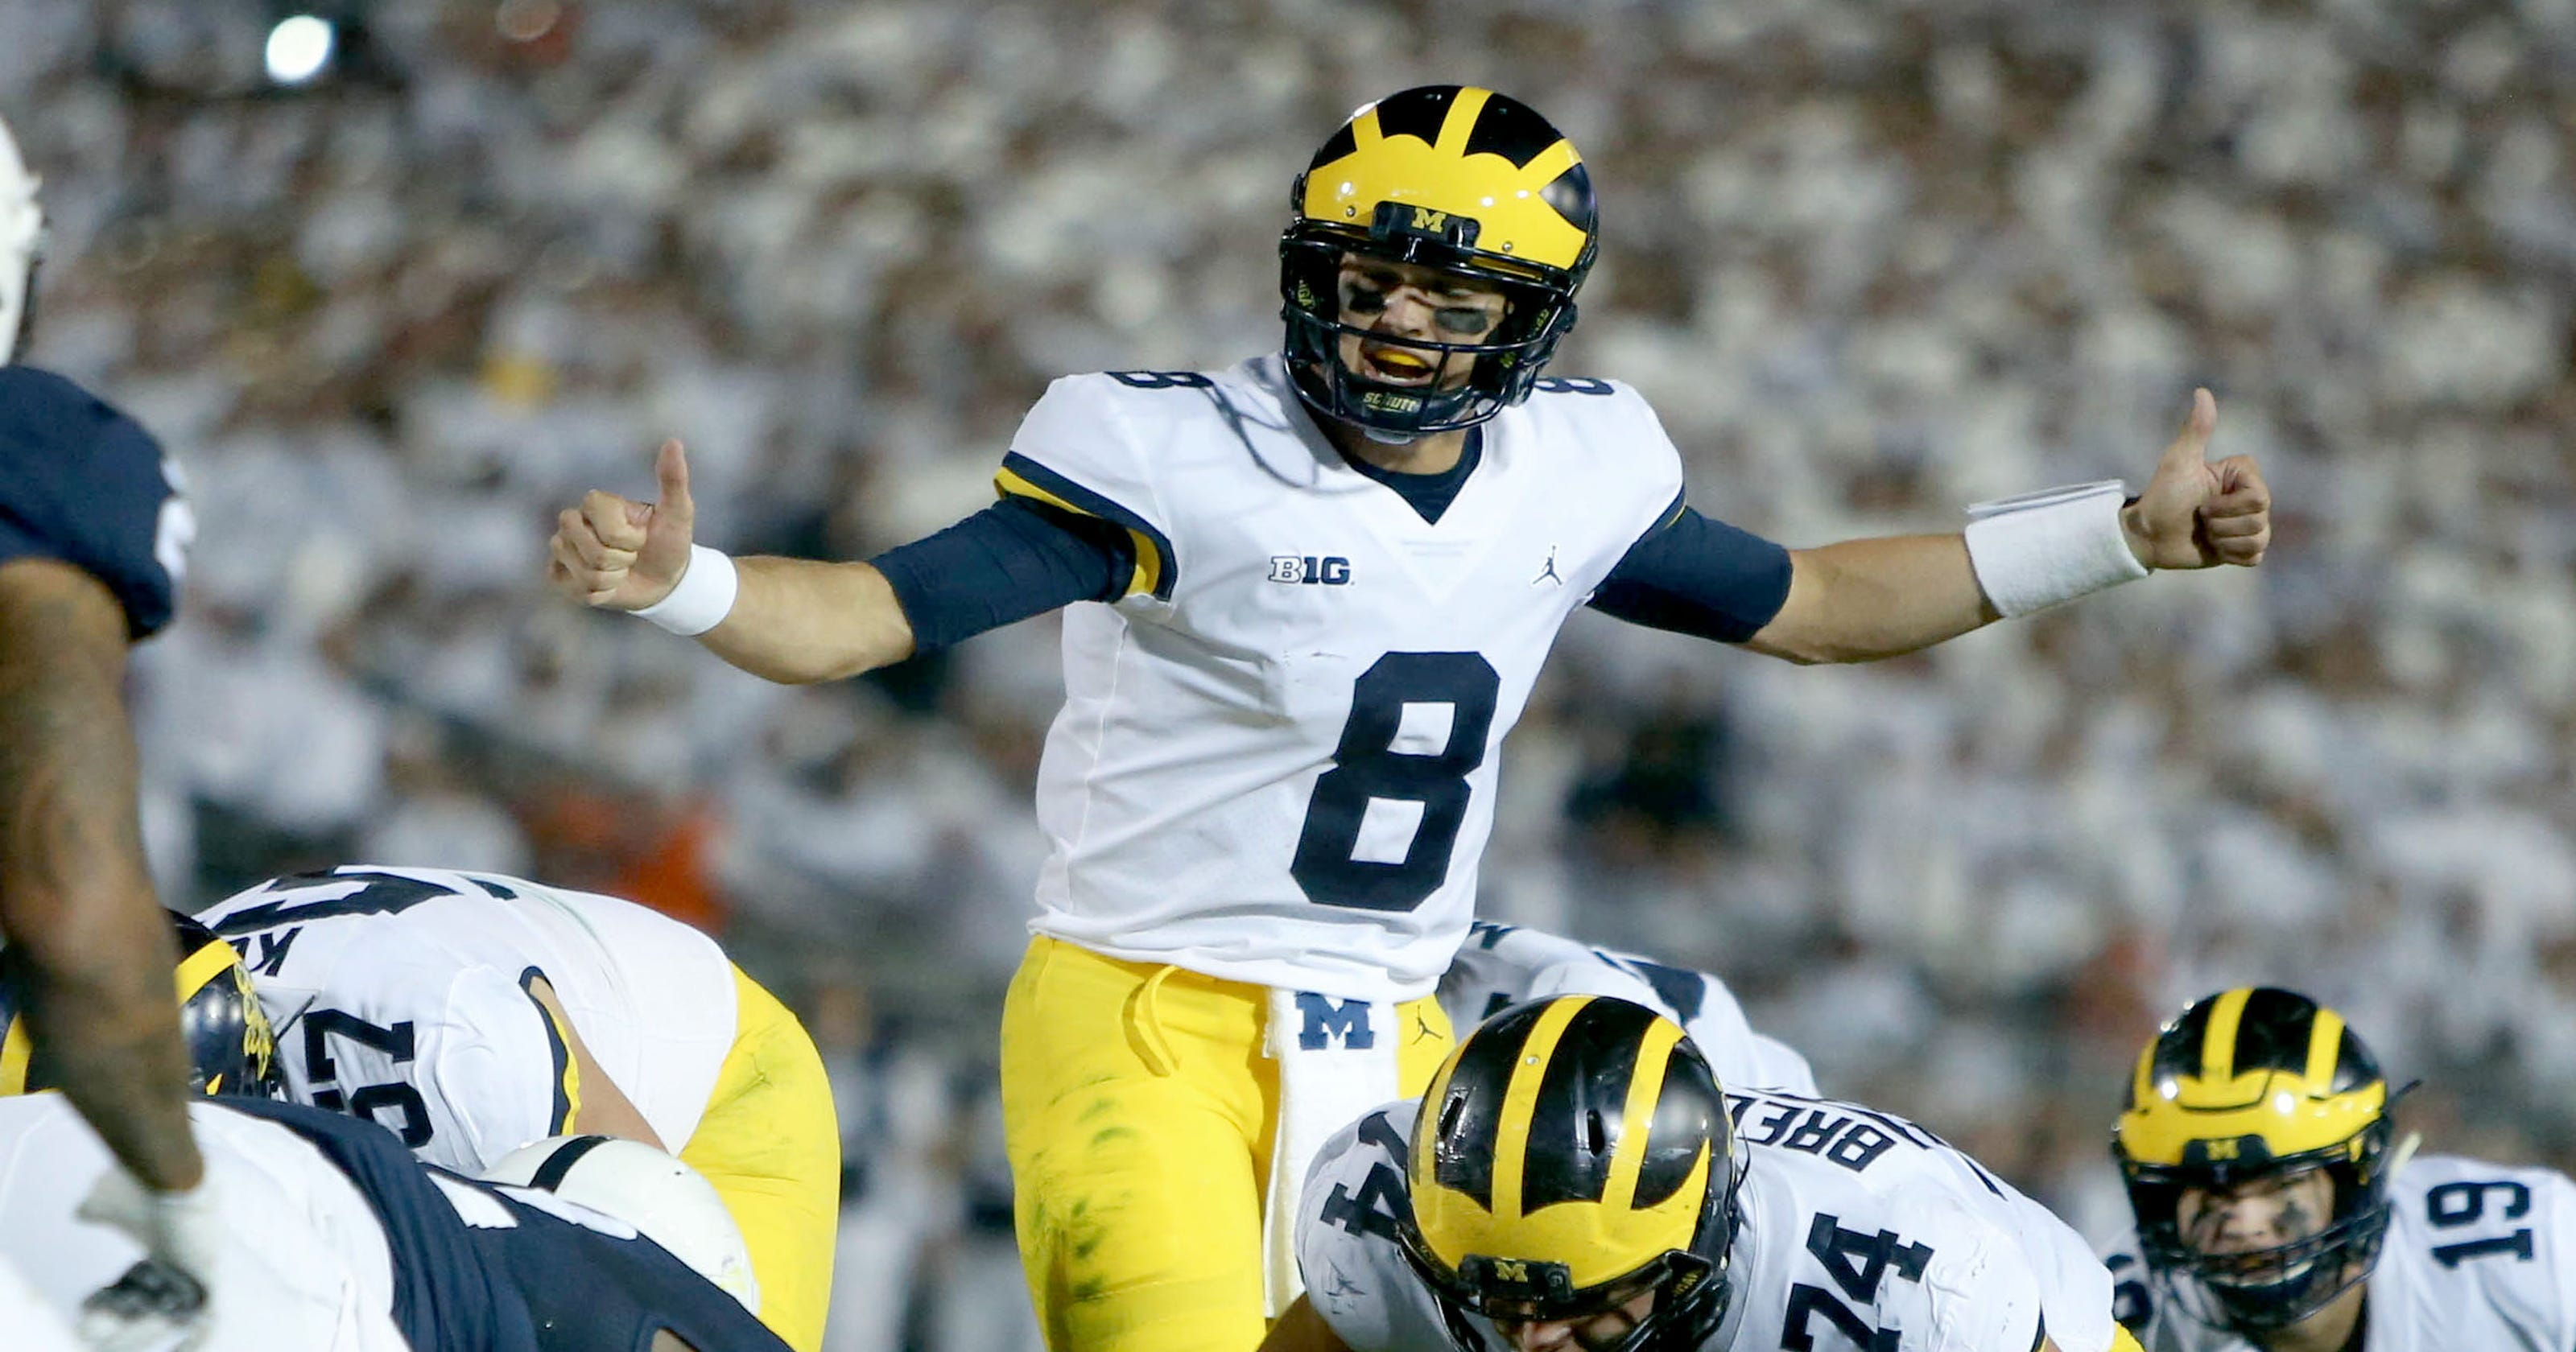 Michigan rocked early and late in blowout loss at Penn State 579731e73